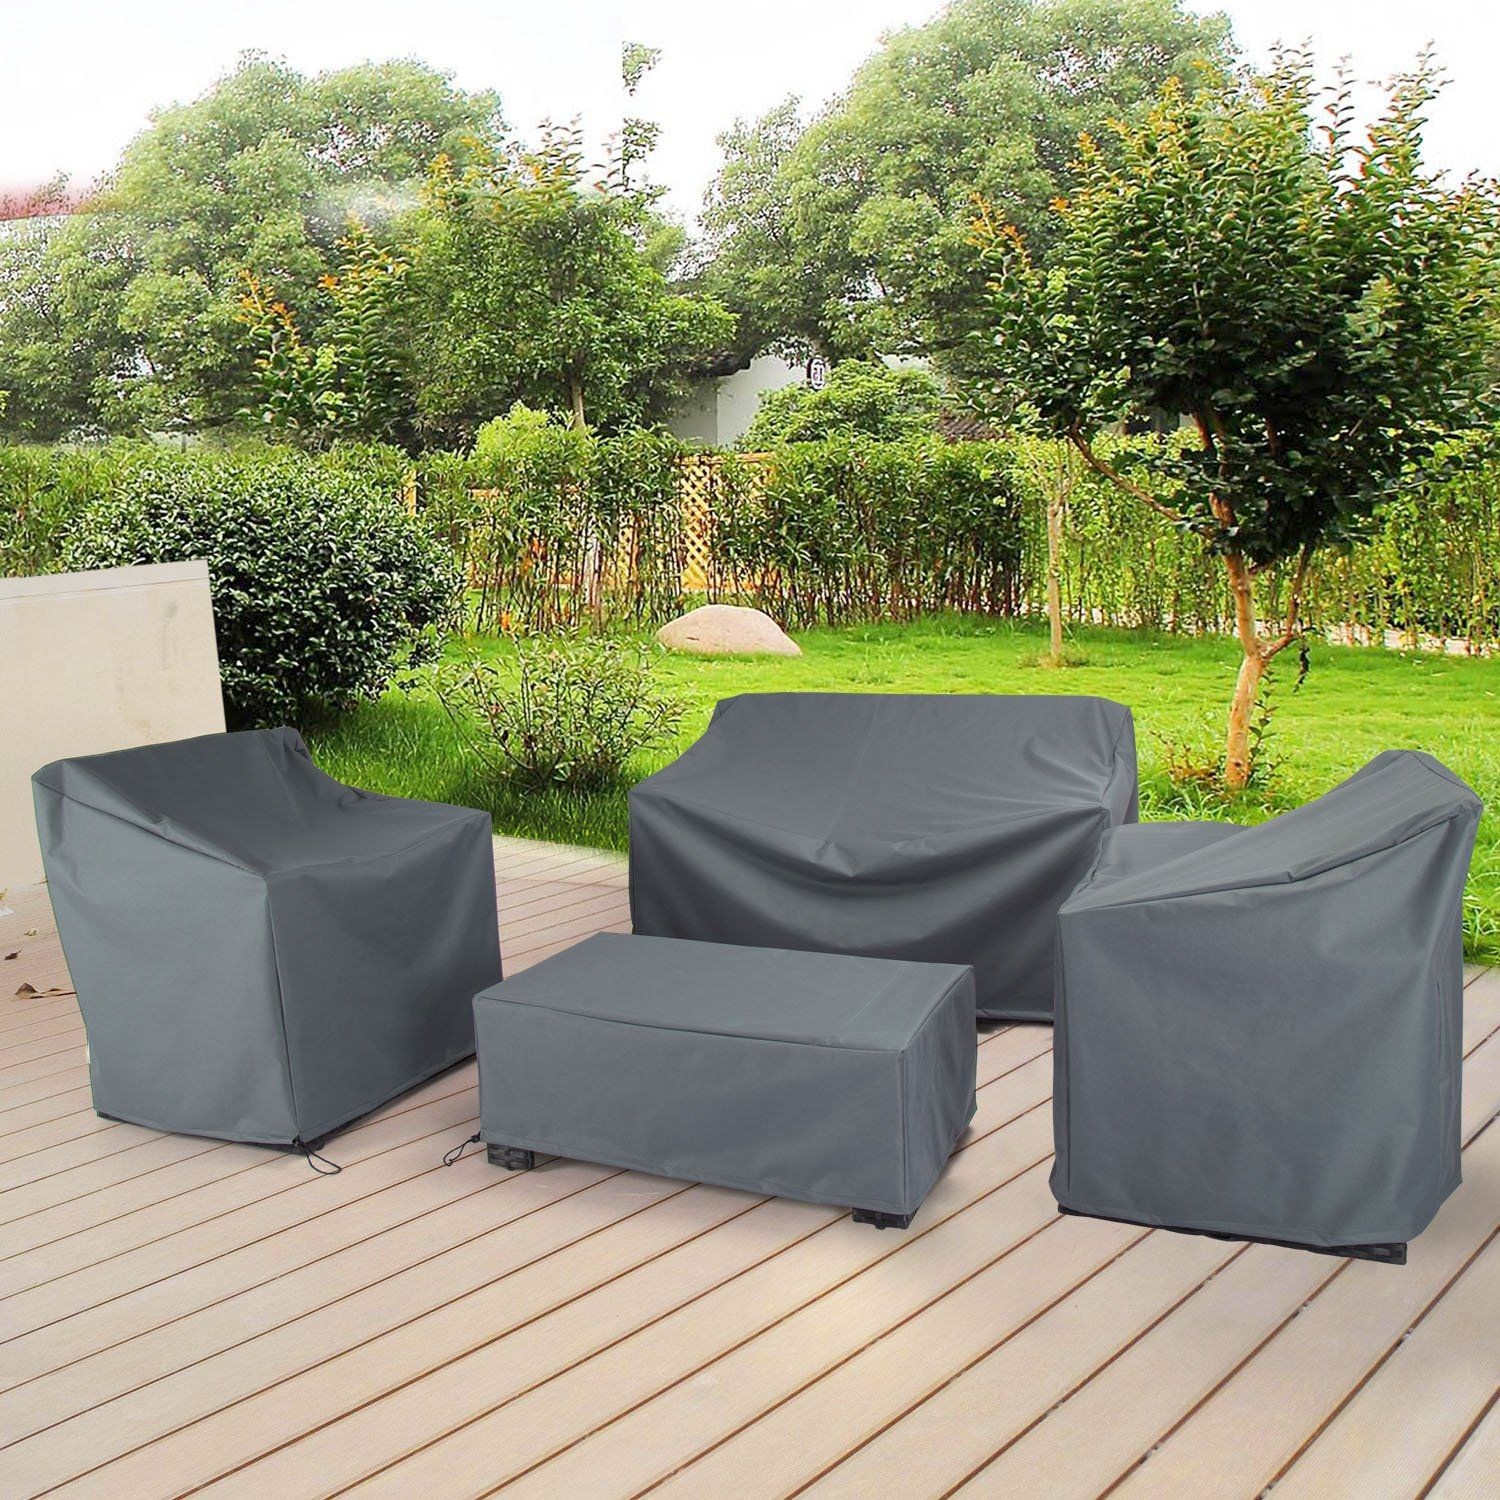 Baner Garden N87 4piece Outdoor Veranda Patio Garden Furniture Cover Set  with Durable and Water Resistant Fabric Grey *** Read more at the image  link. - Baner Garden N87 4piece Outdoor Veranda Patio Garden Furniture Cover